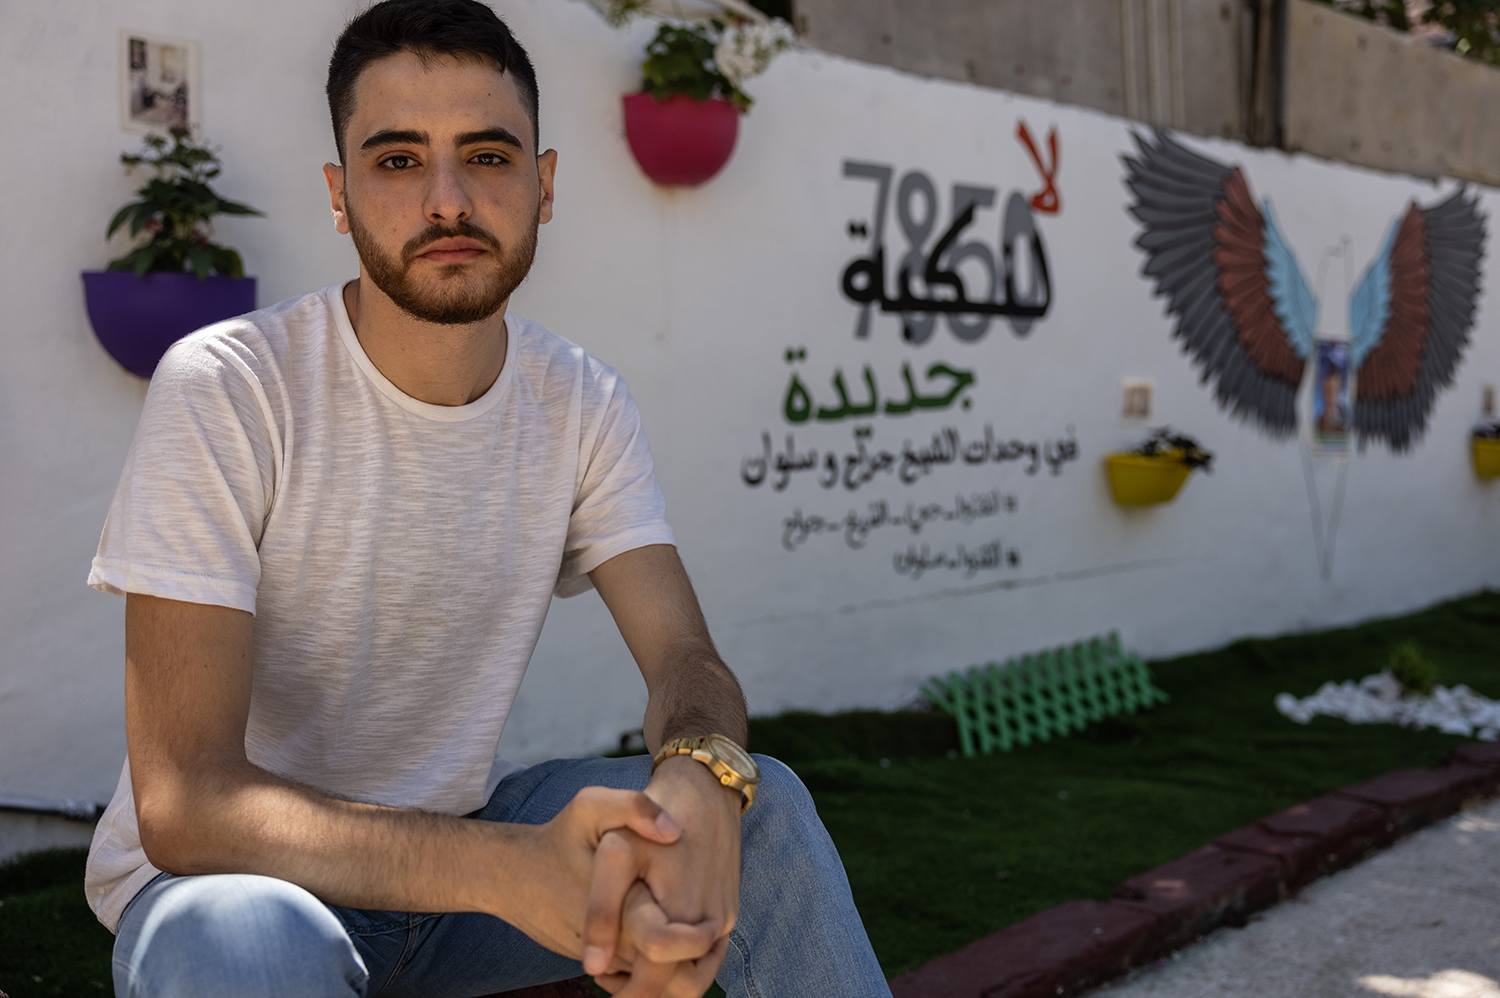 Mohammed El-Kurd, photographed on July 4, is a 23-year-old creative writing student who grew up in occupied East Jerusalem.